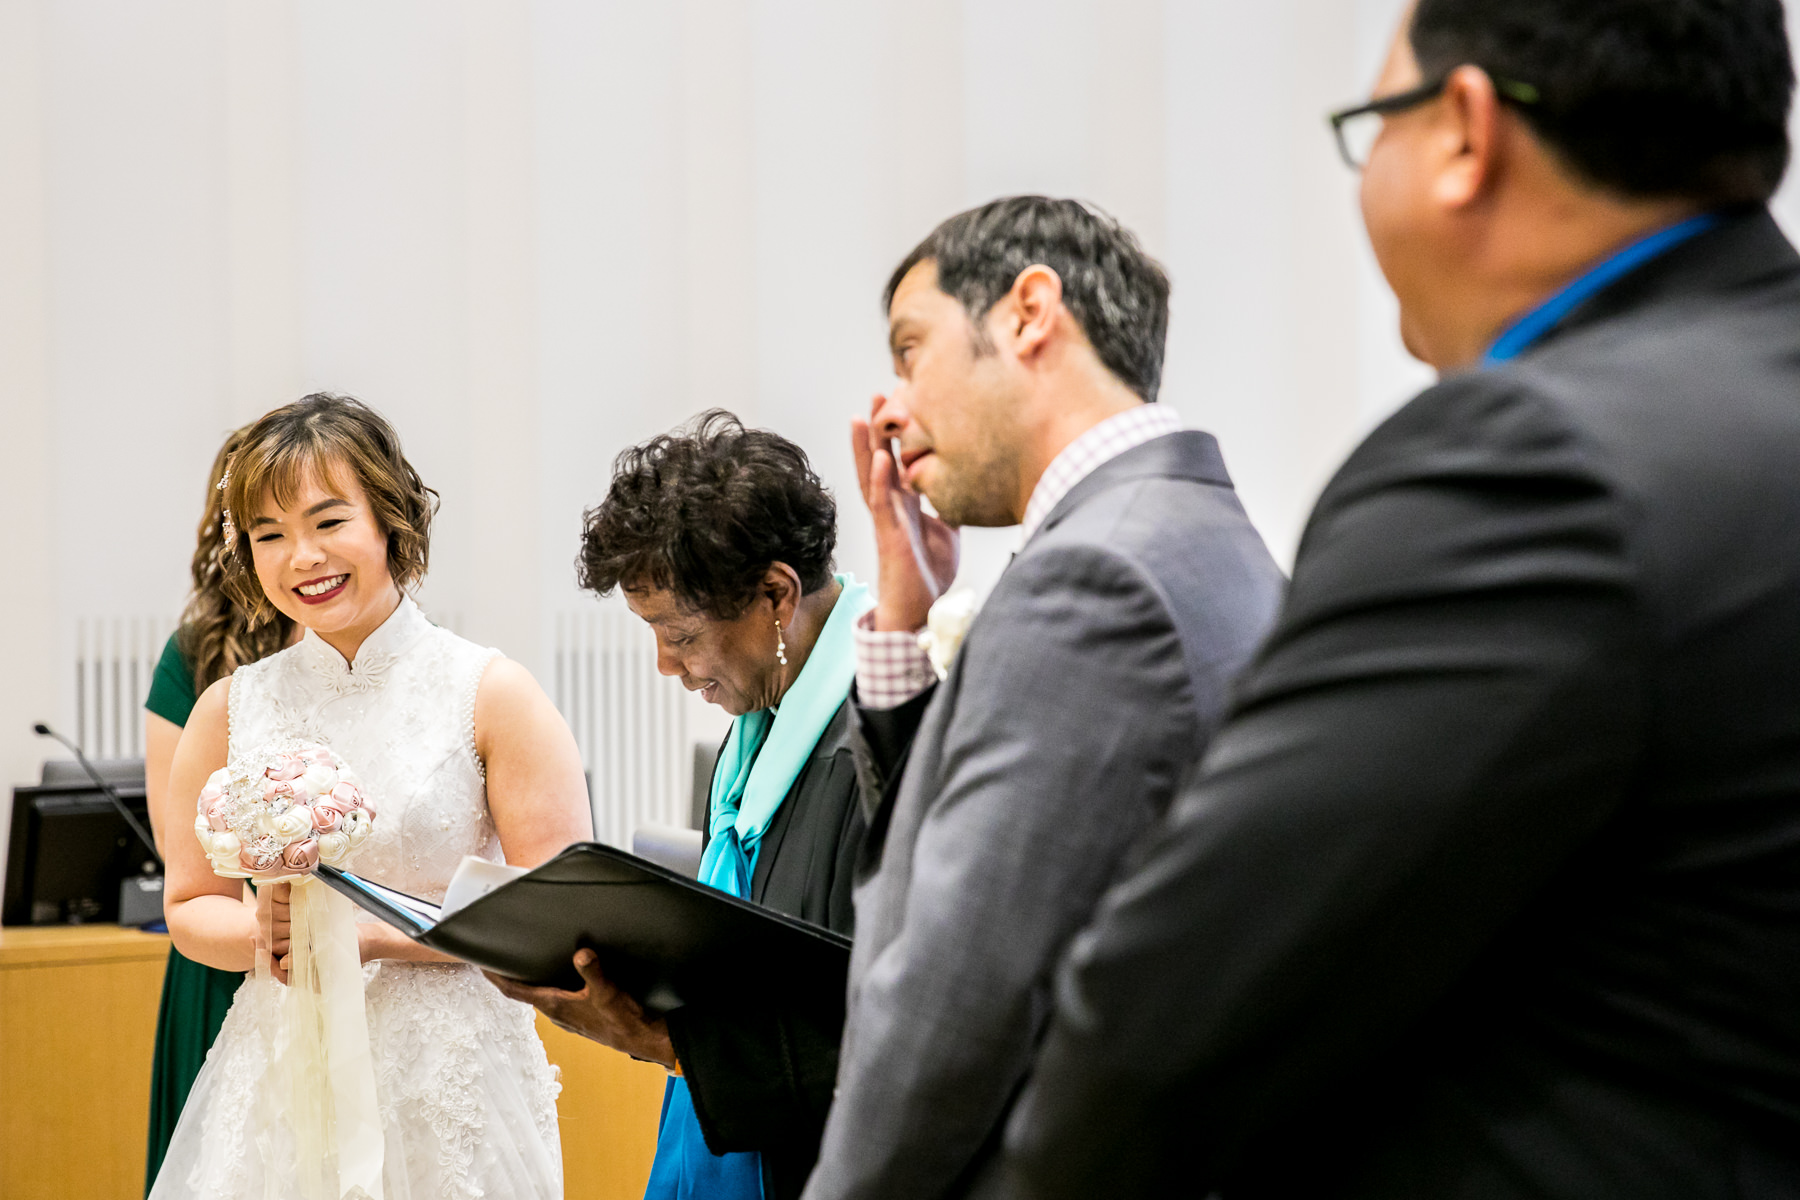 tears of joy from groom while bride smiles during civil ceremony in los angeles